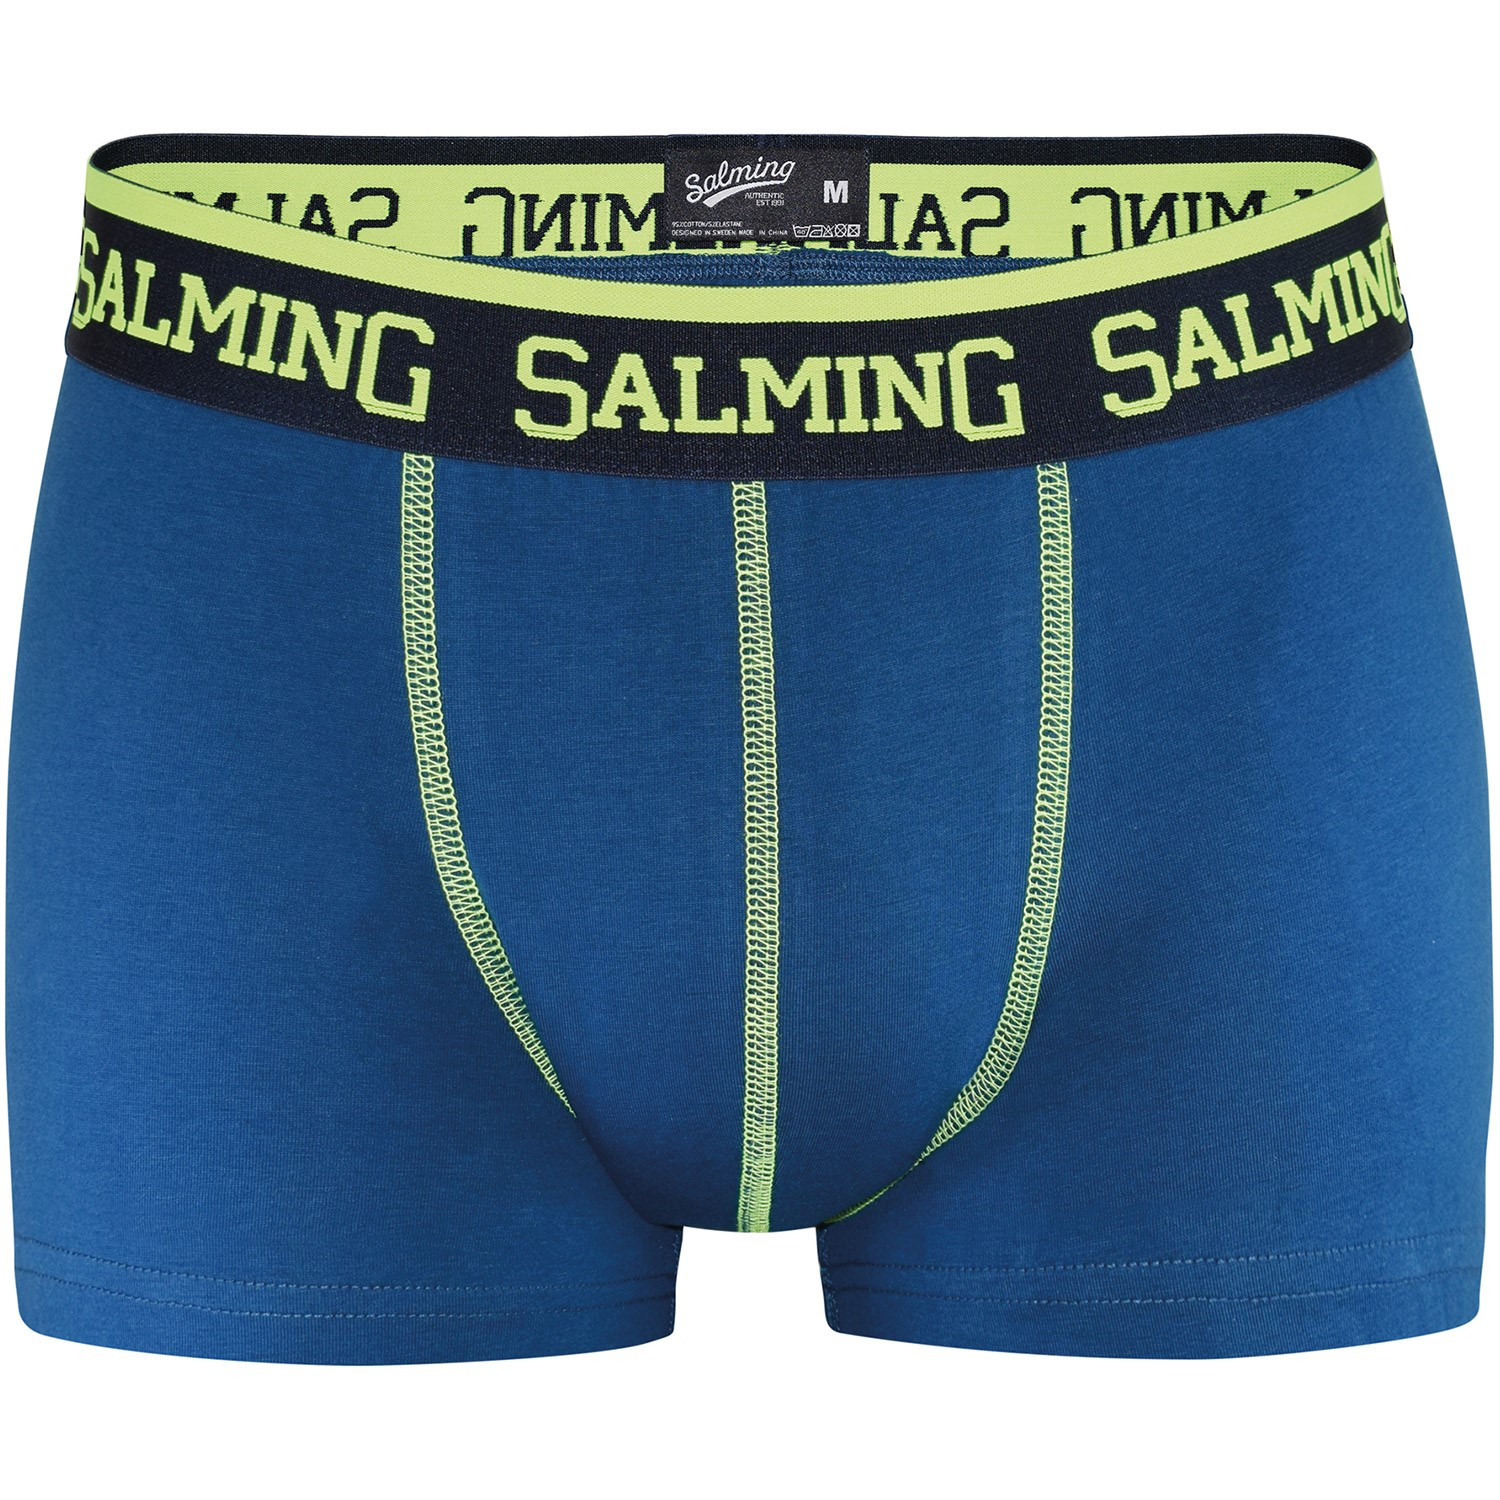 2-Pack Salming Jared Boxer - Boxer - Trunks - Underwear - Timarco.eu 938002429f285